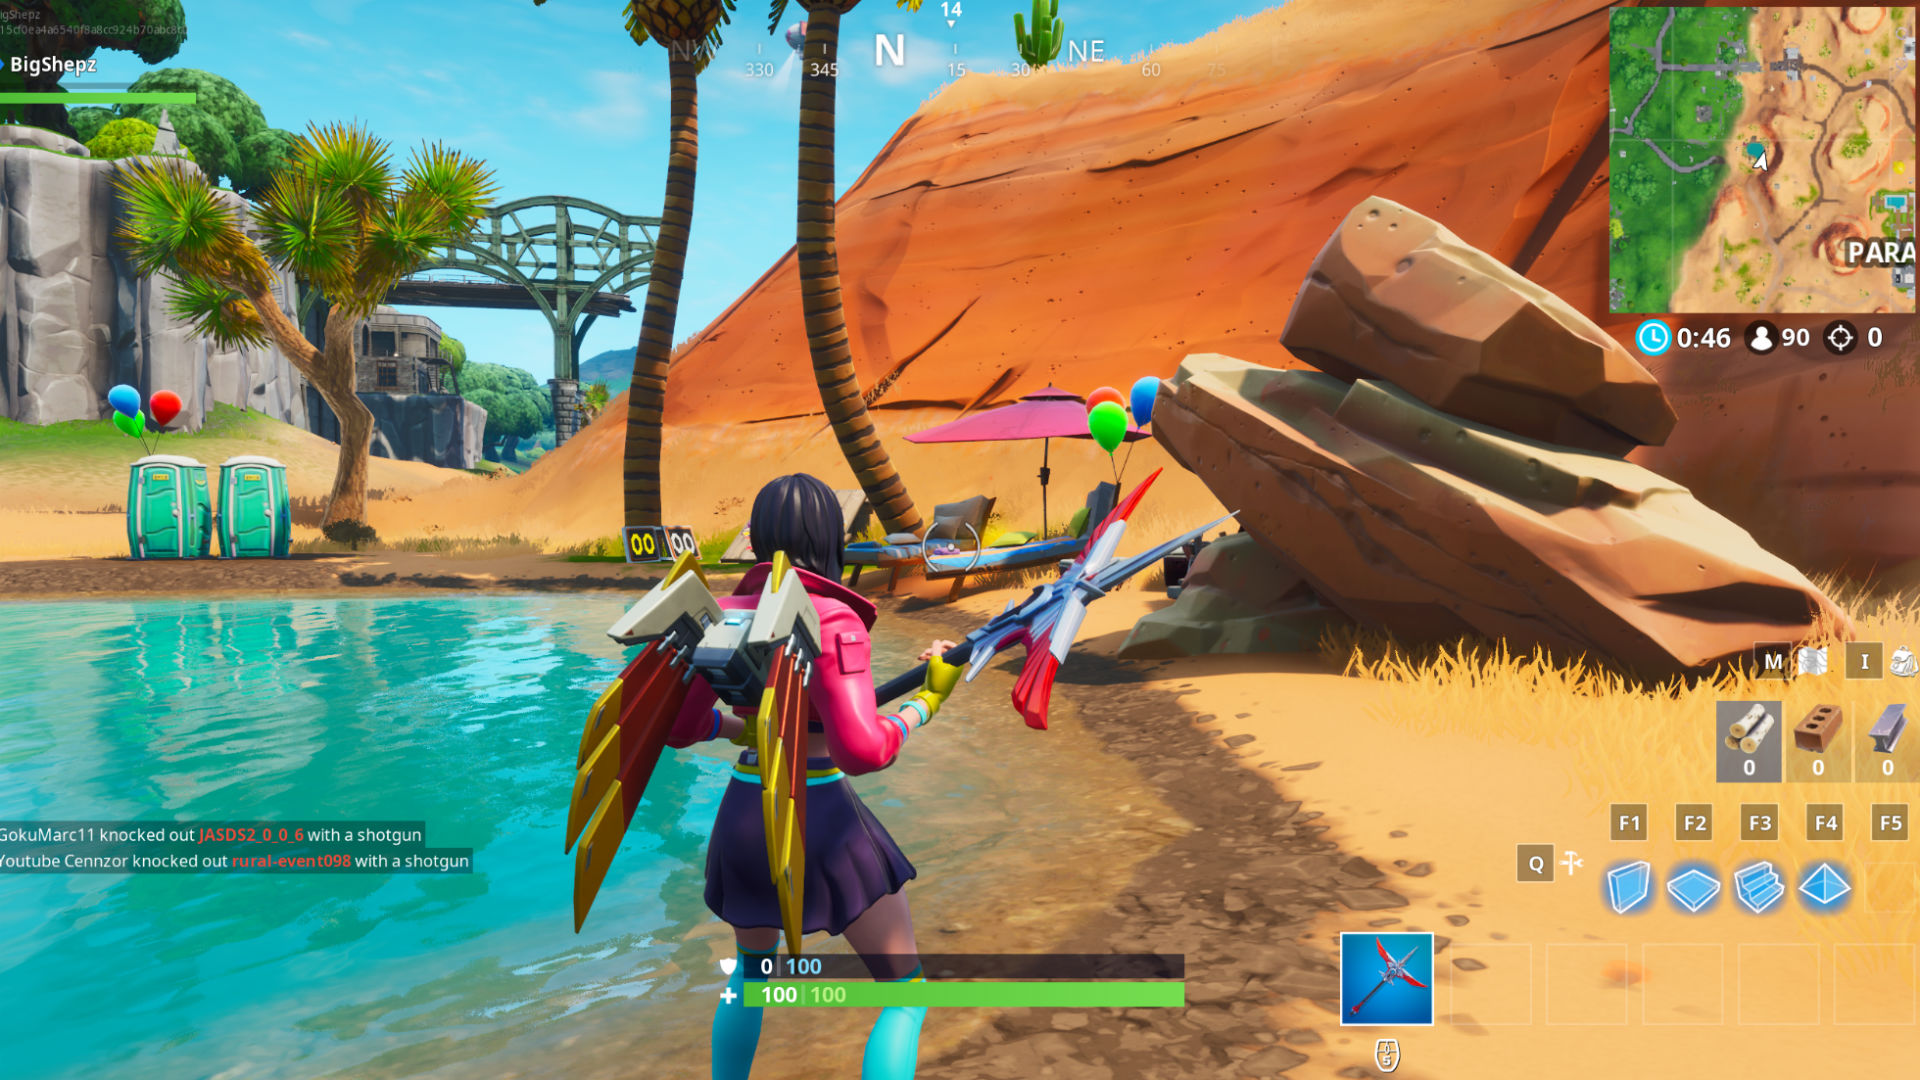 Fortnite Where To Dance At Different Beach Parties Fortnite Beach Parties Where To Dance At Different Beach Parties Pcgamesn